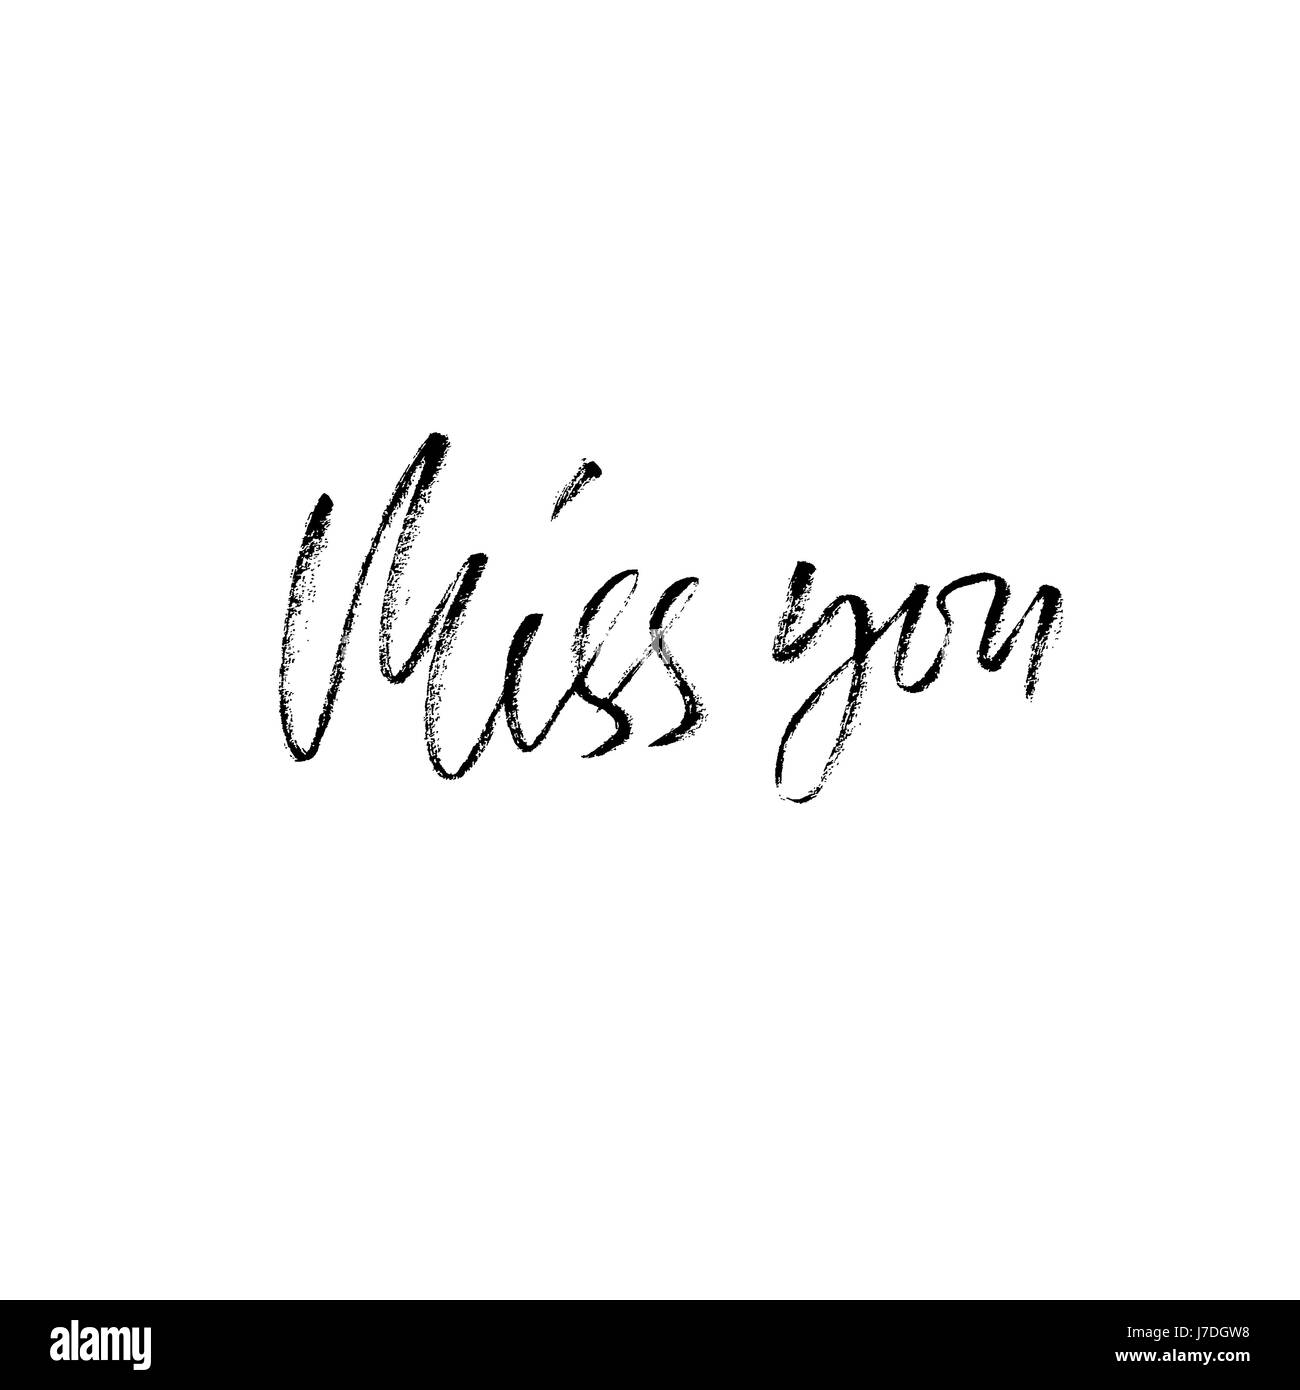 Miss you inscription greeting card with calligraphy hand drawn miss you inscription greeting card with calligraphy hand drawn modern dry brush lettering design vector typography kristyandbryce Image collections